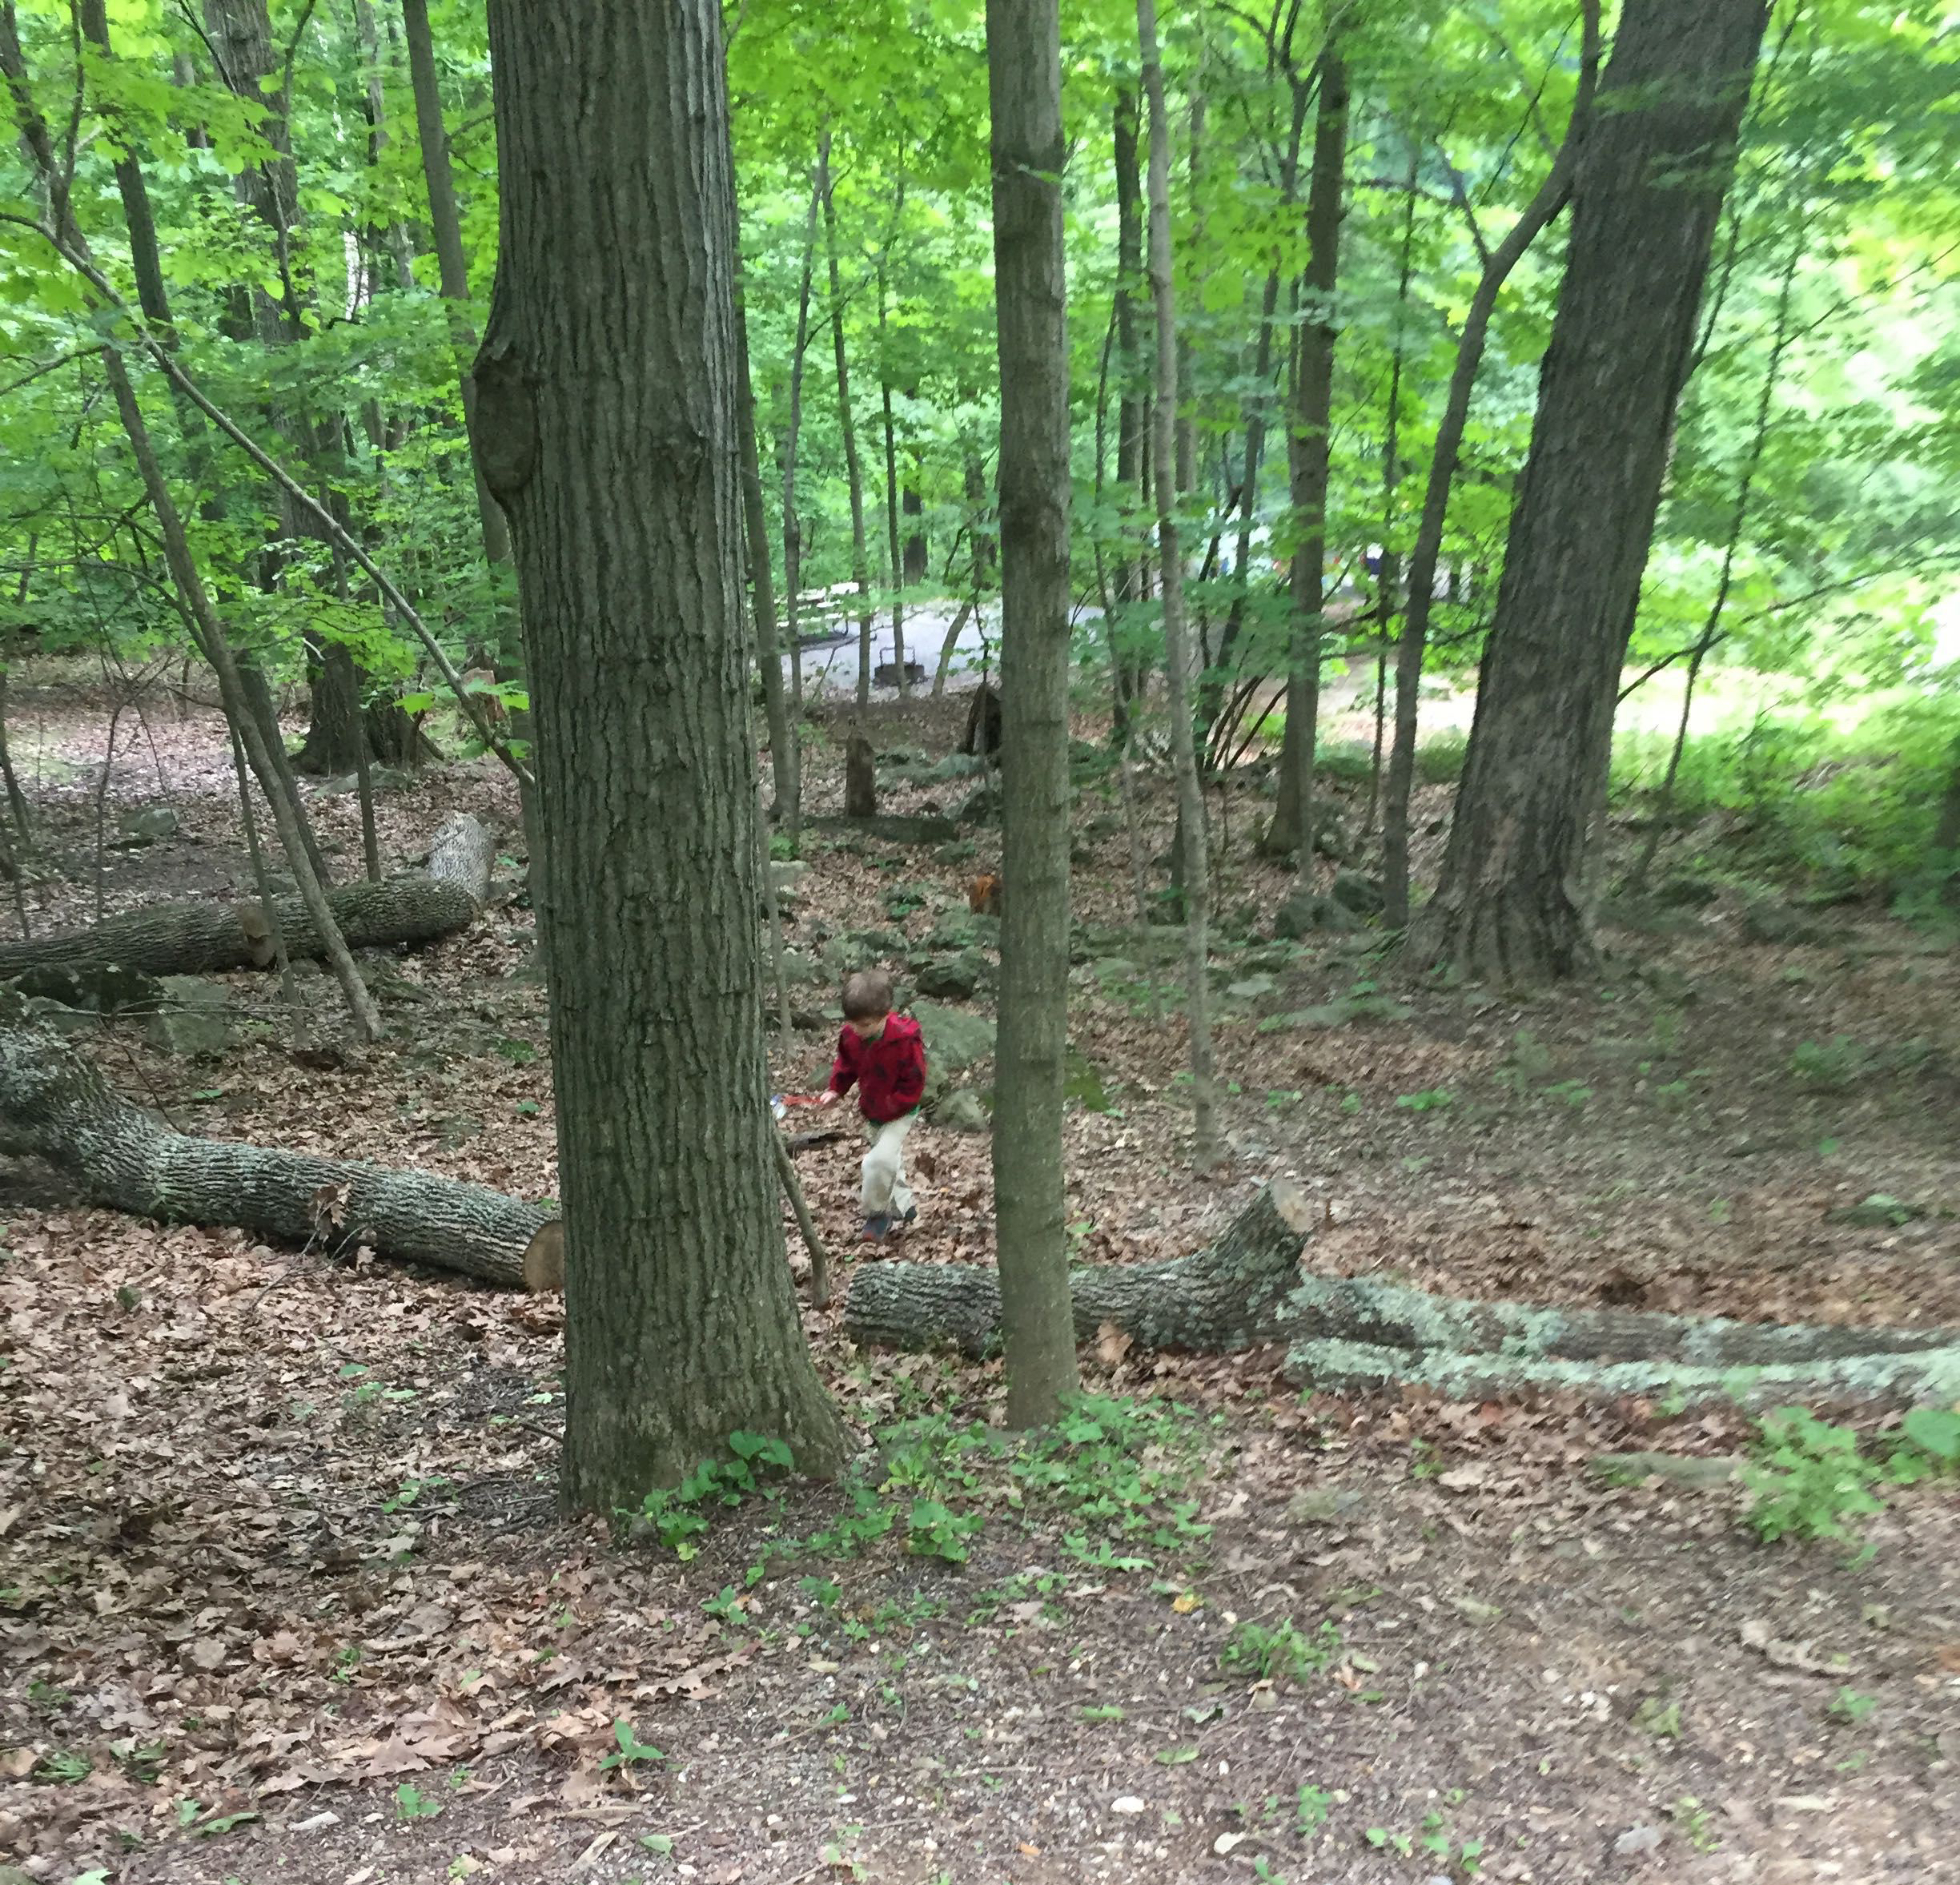 Photo of a child in a red jacket walking up through the forest